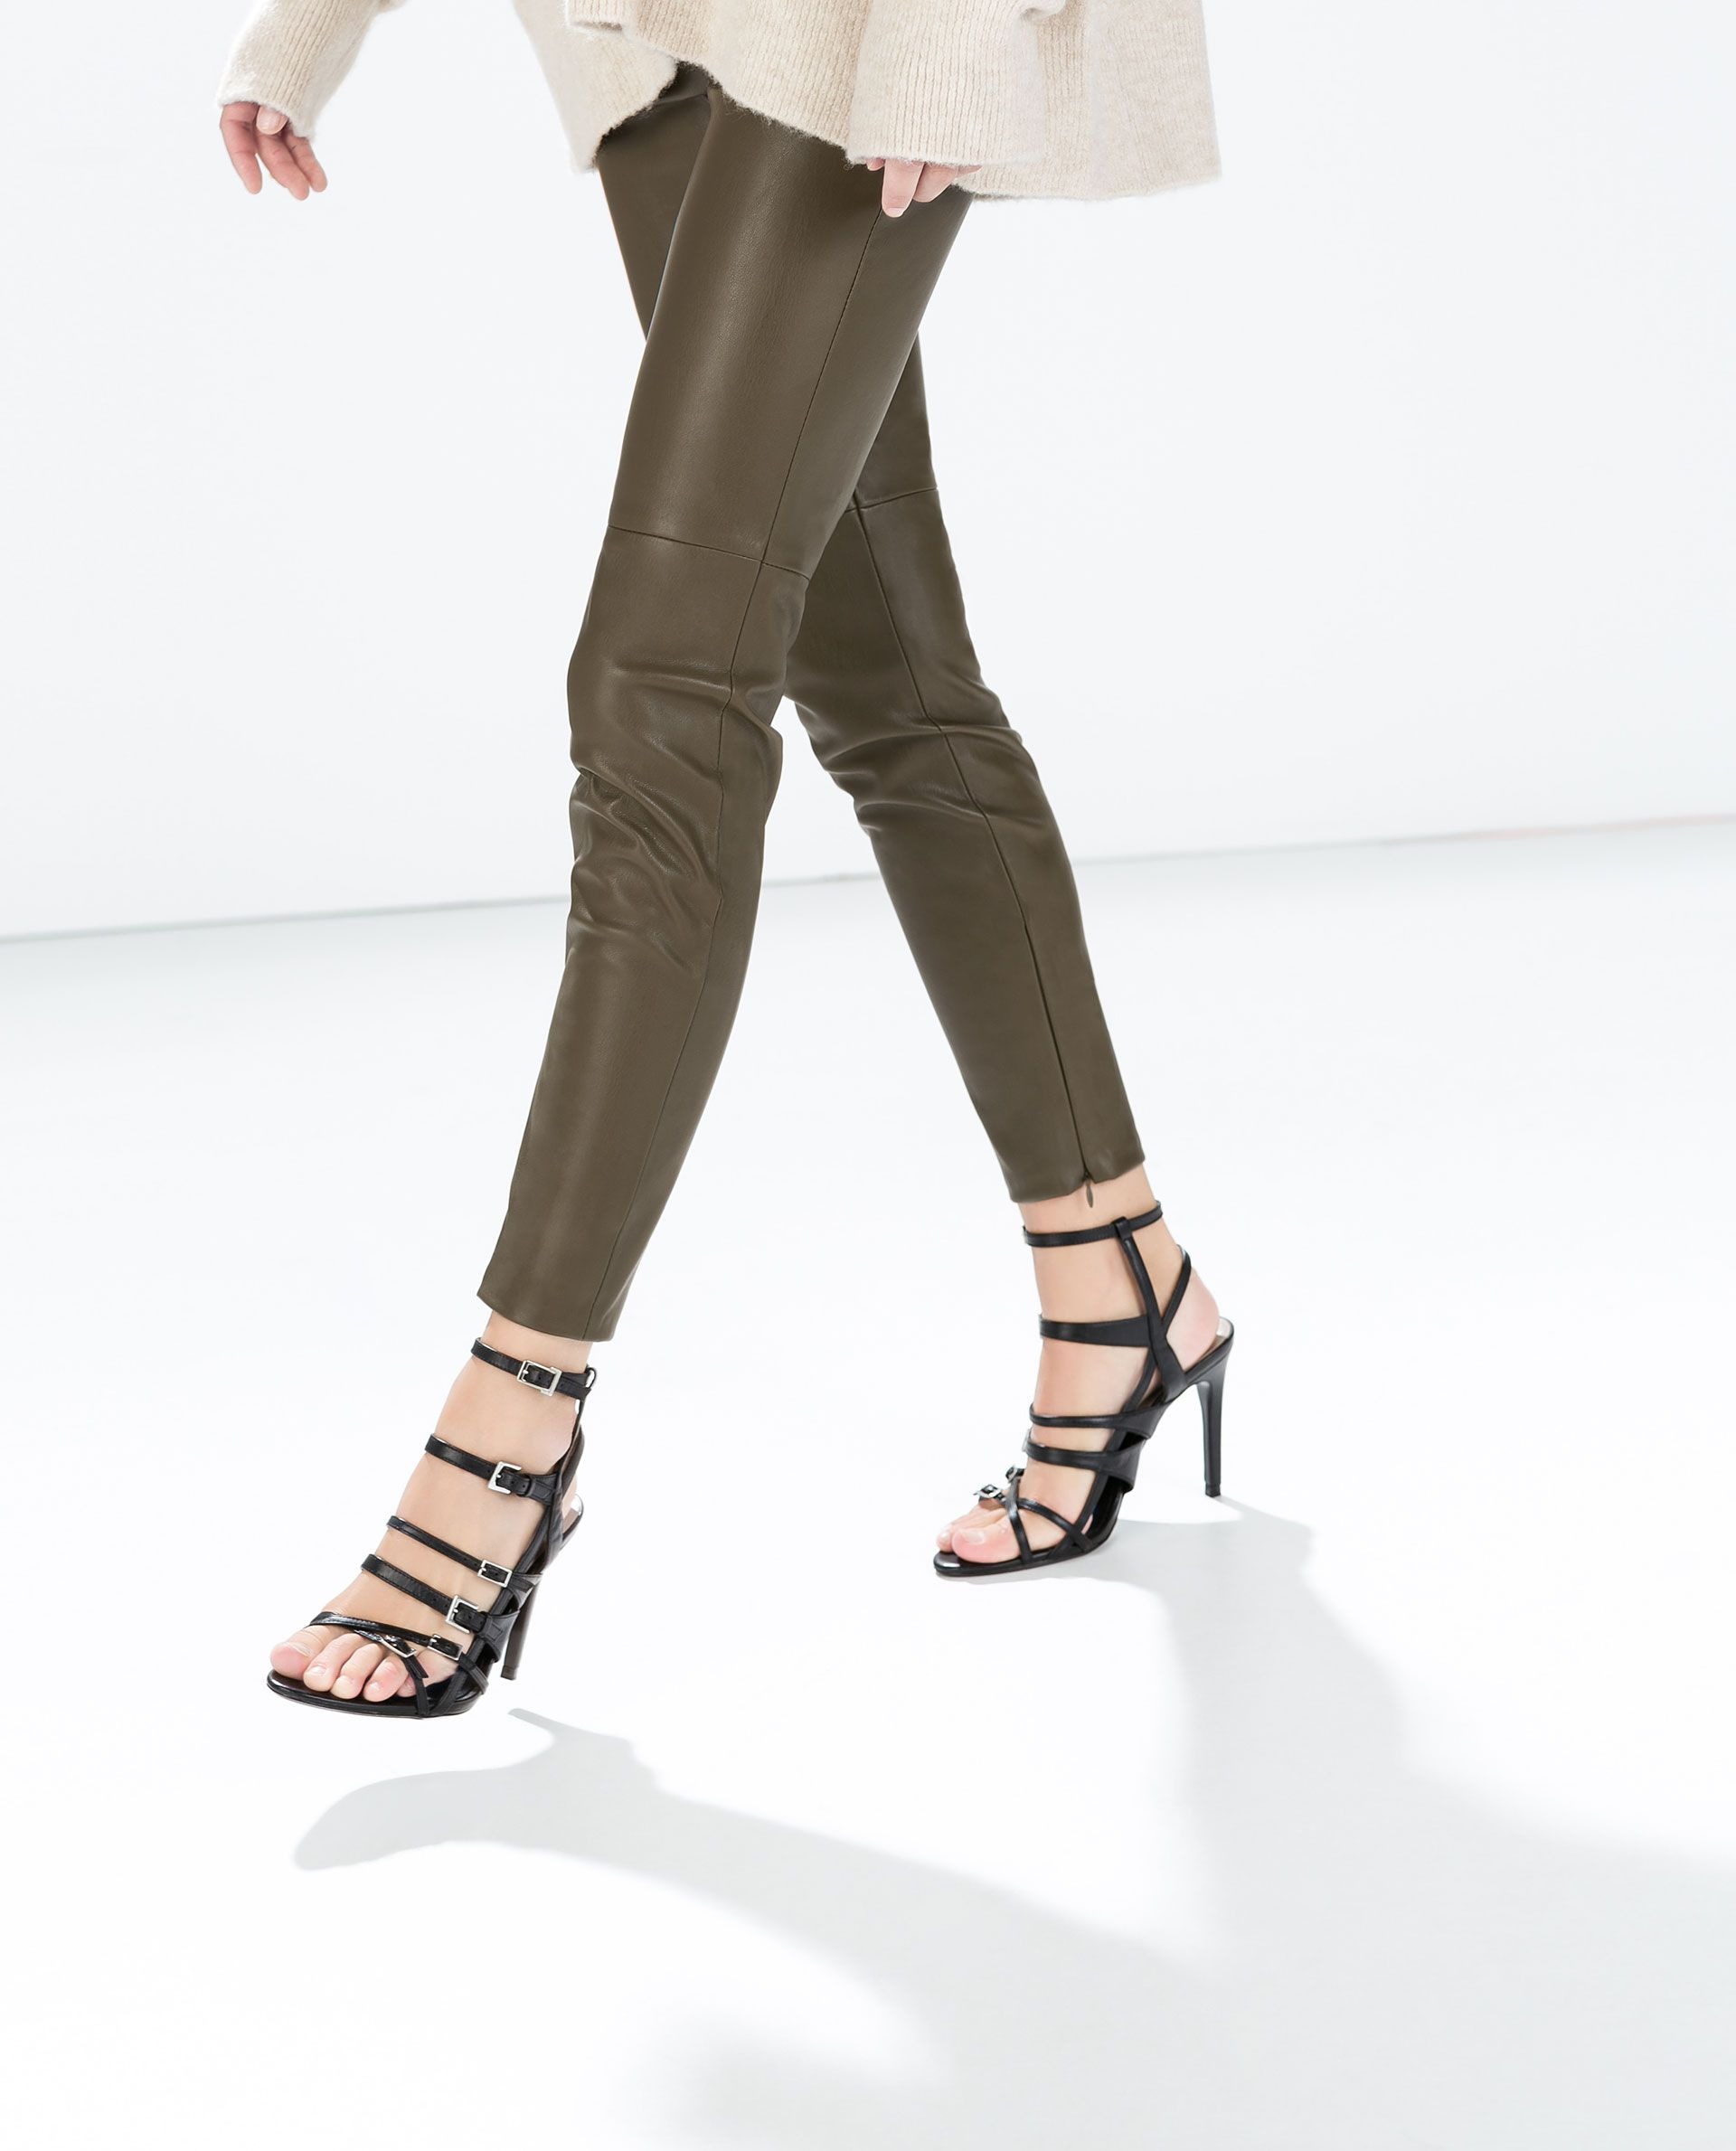 79fb7e5a FAUX LEATHER LEGGINGS WITH SEAM AT THE KNEE from Zara | Fashion ...